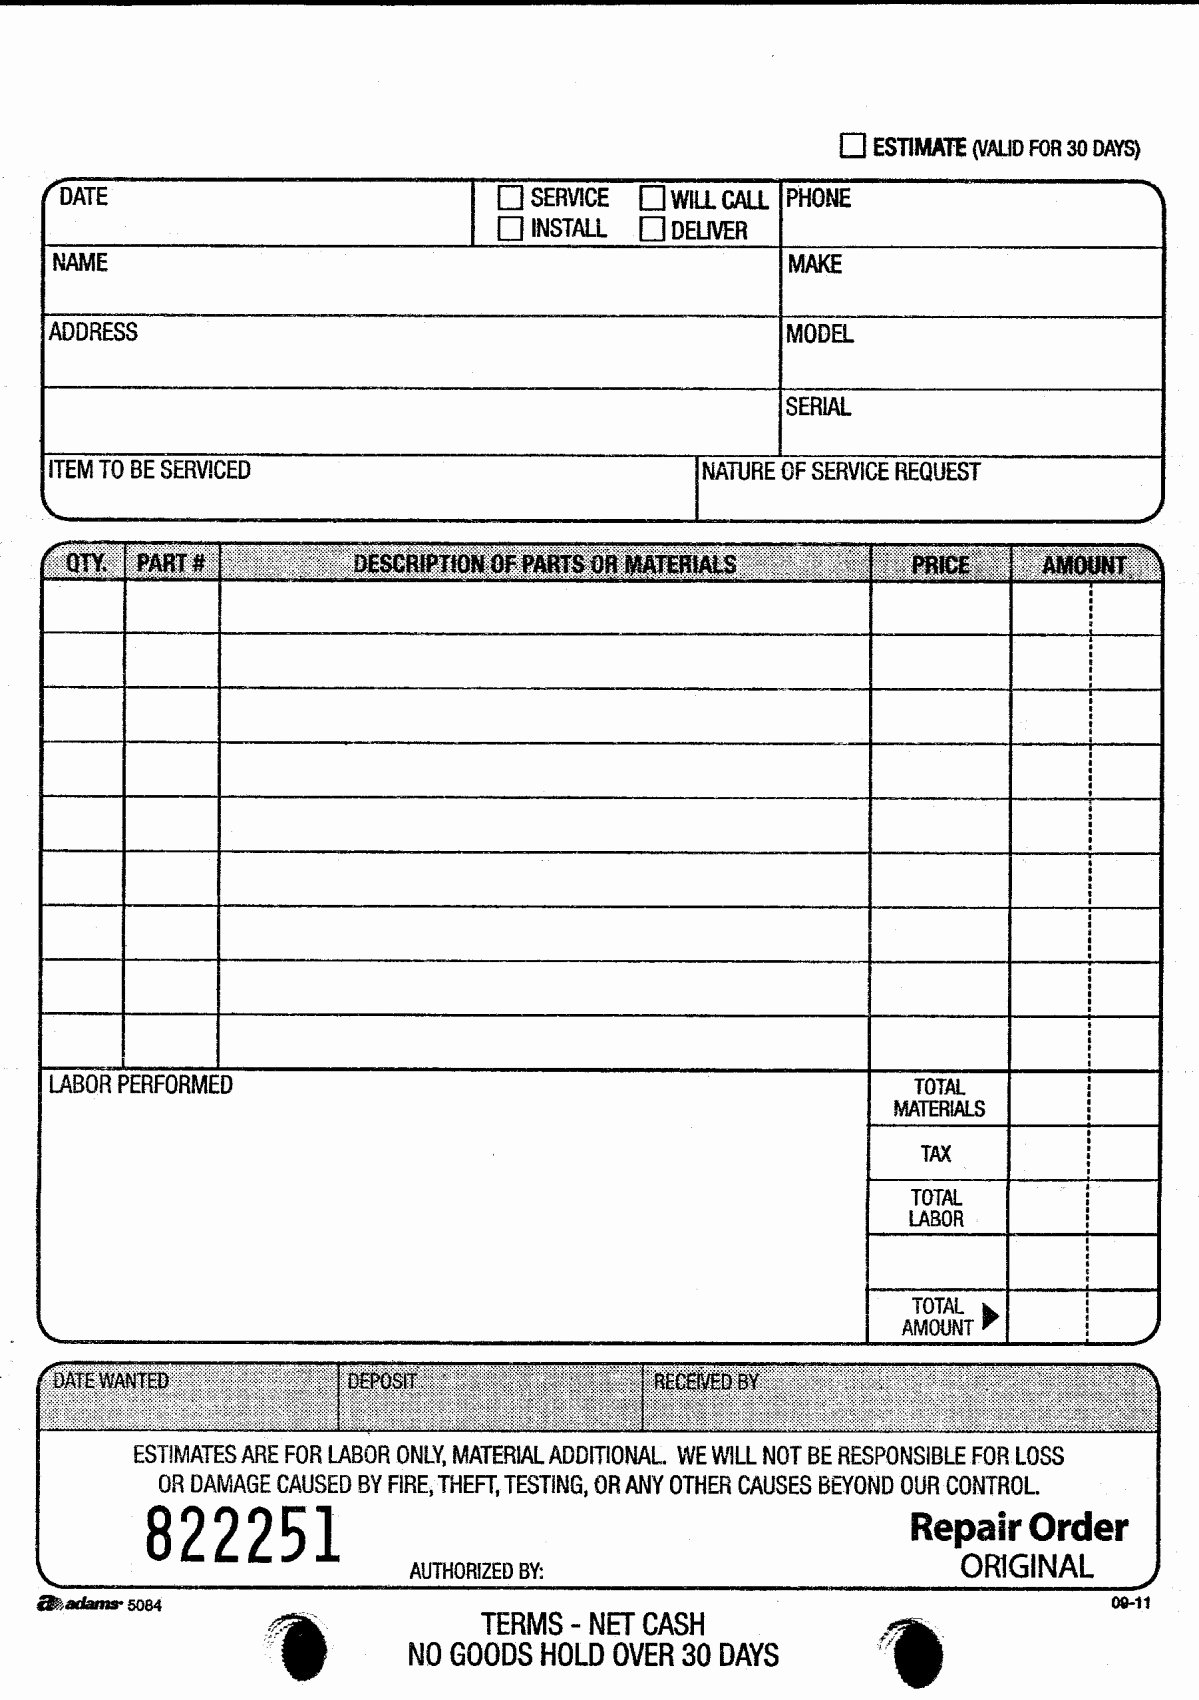 adams d5084 repair order book 2 part